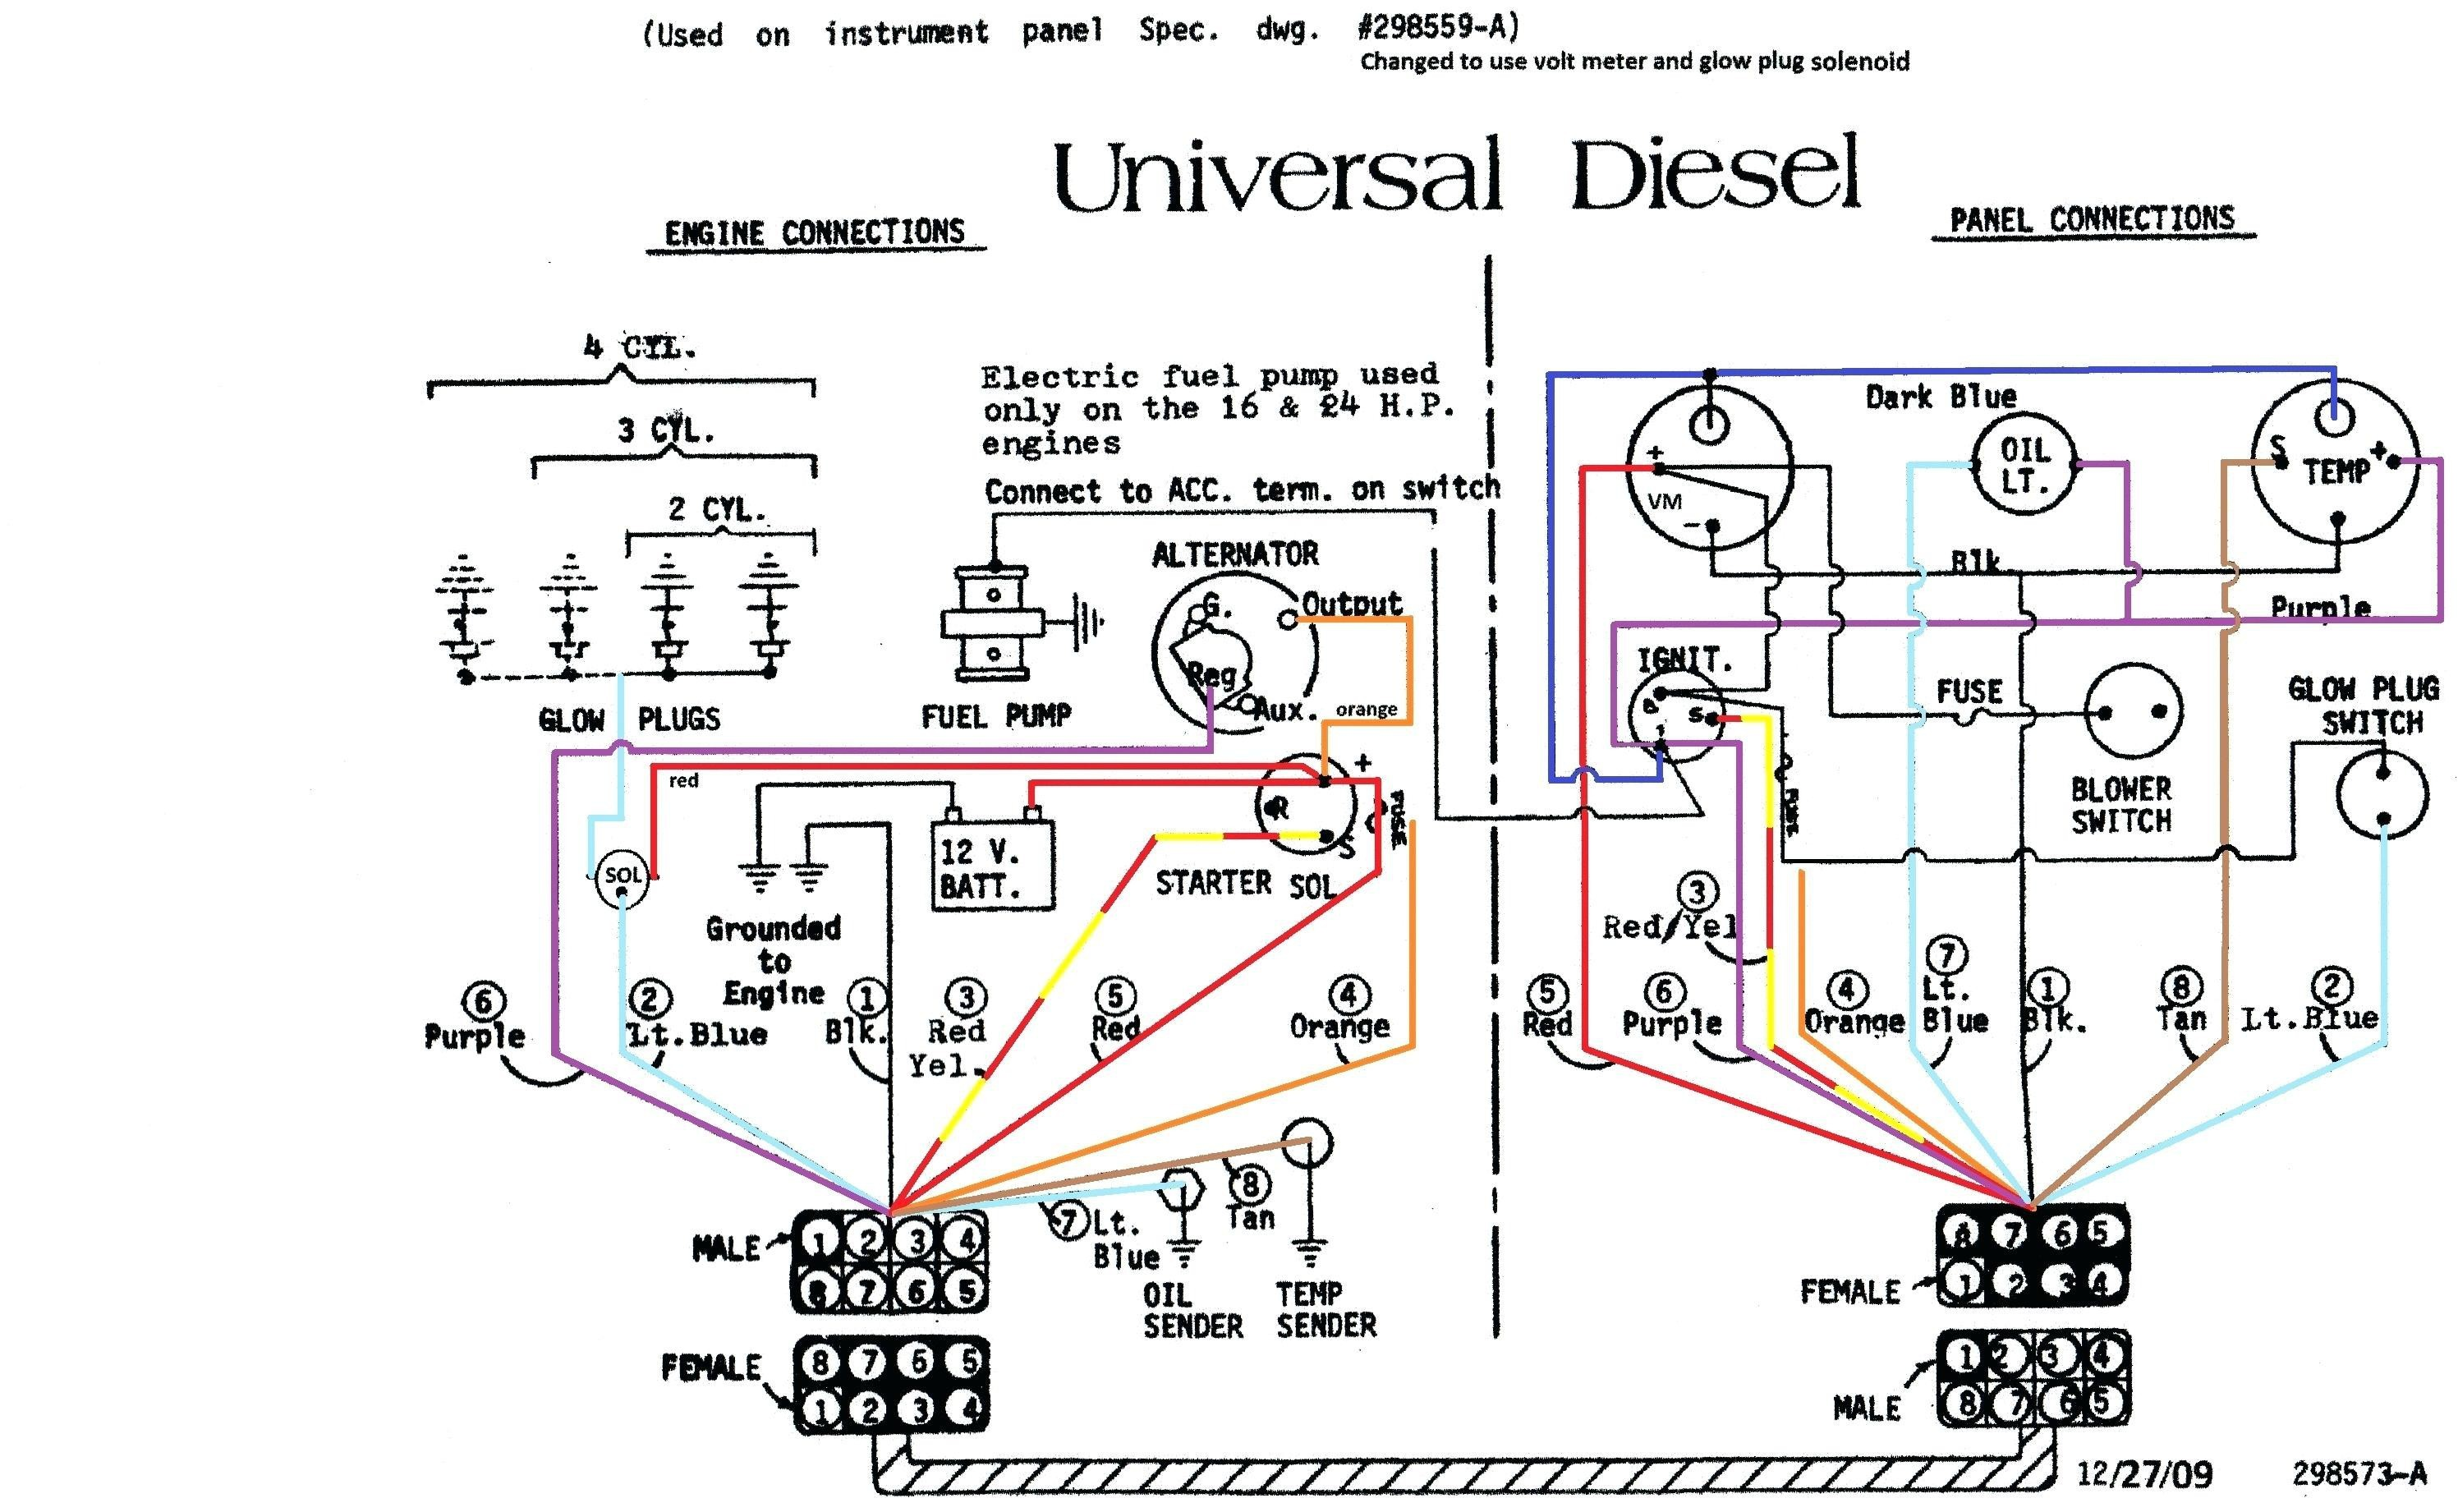 Toyota 2e alternator wiring diagram 4k wiki wallpapers 2018 amusing toyota 2e alternator wiring diagram ideas best image toyota alternator wiring diagram unique 2 wire swarovskicordoba Gallery